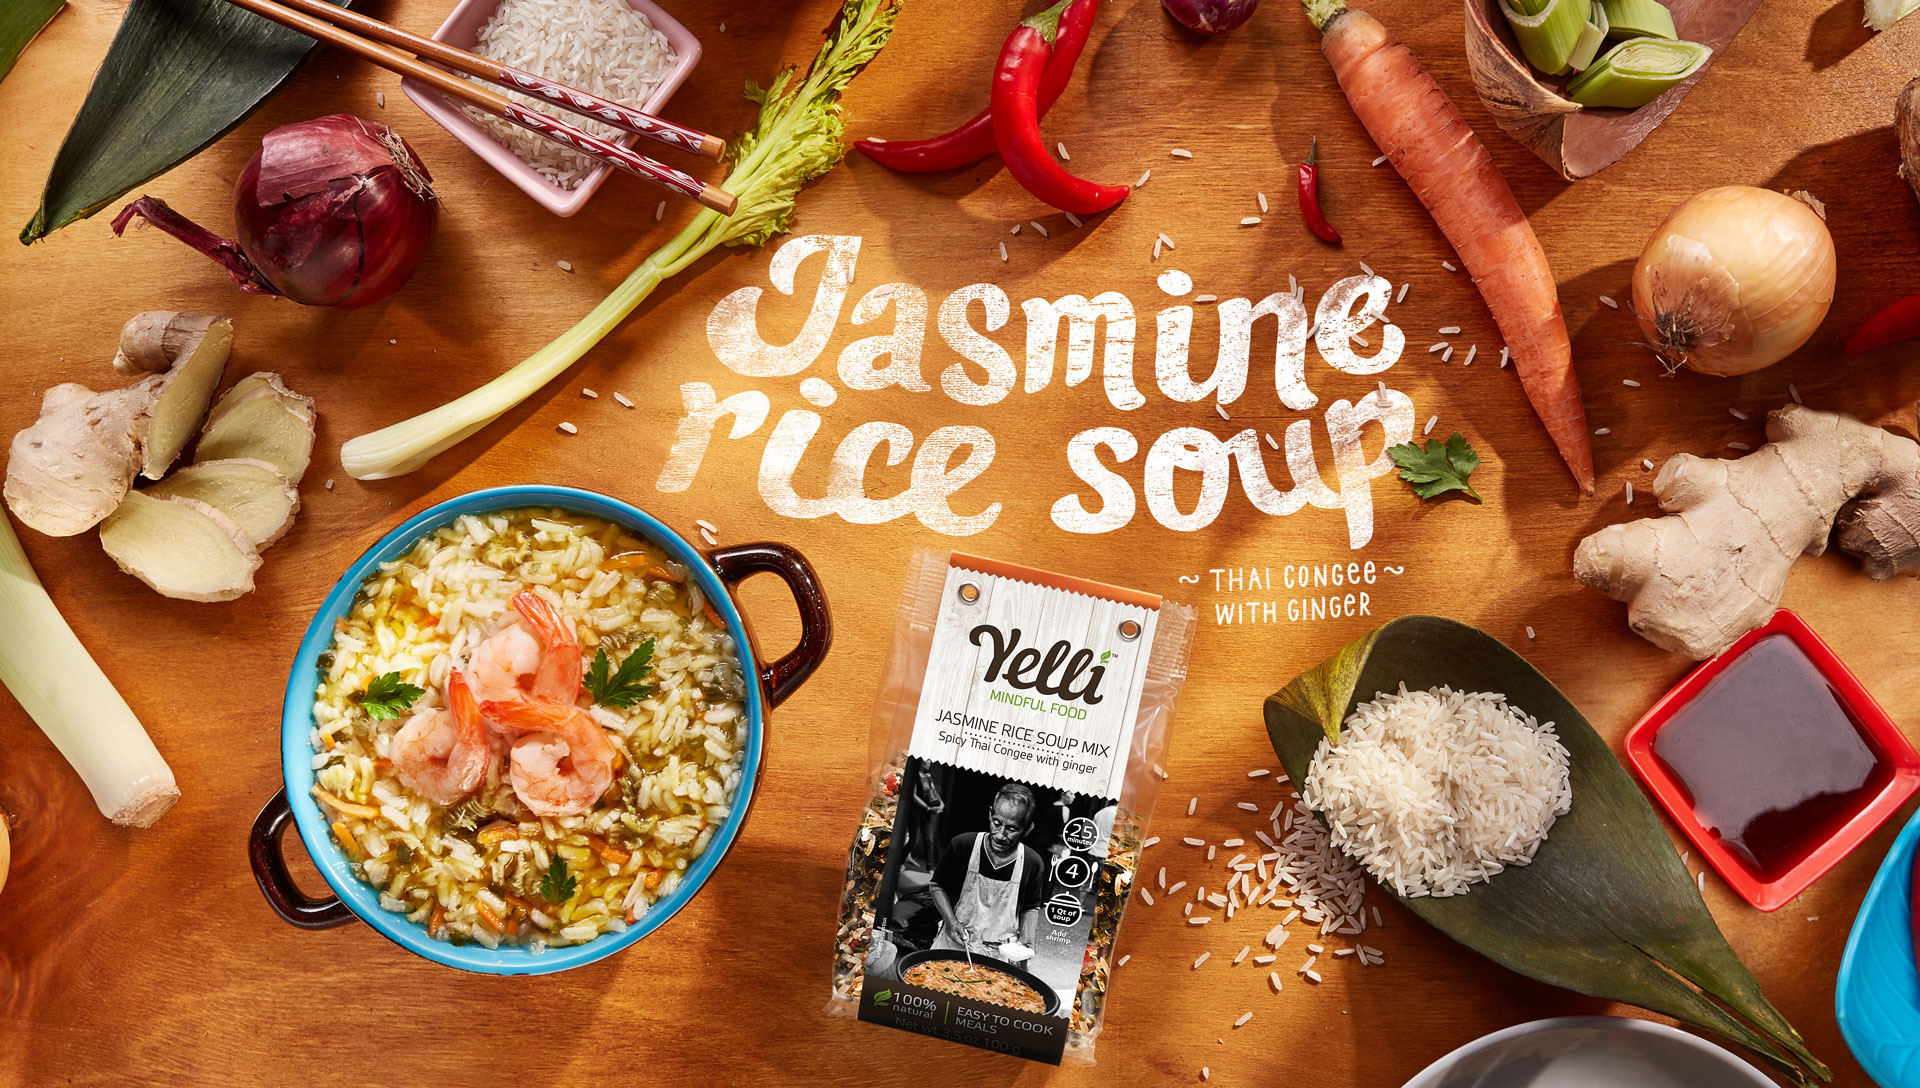 JASMINE RICE SOUP MIX